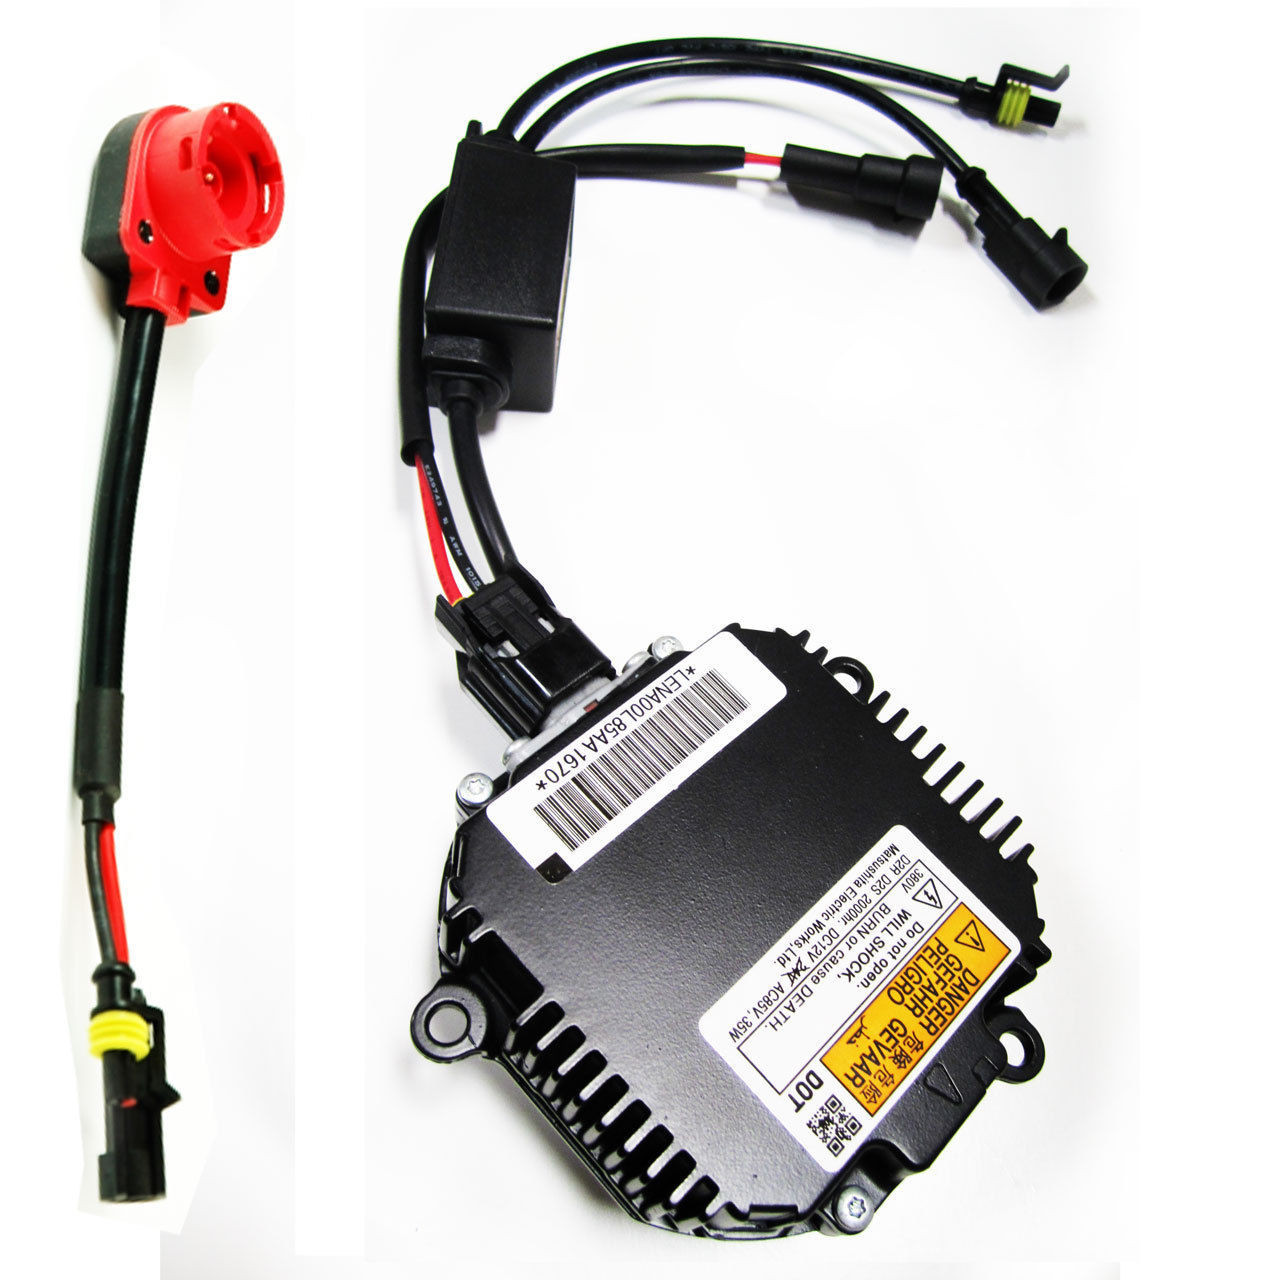 Ballast Hid Xenon Headlight D2s D2r Oem Style For Nissan & Infiniti M35 Oem  Hid Ballast Schematic